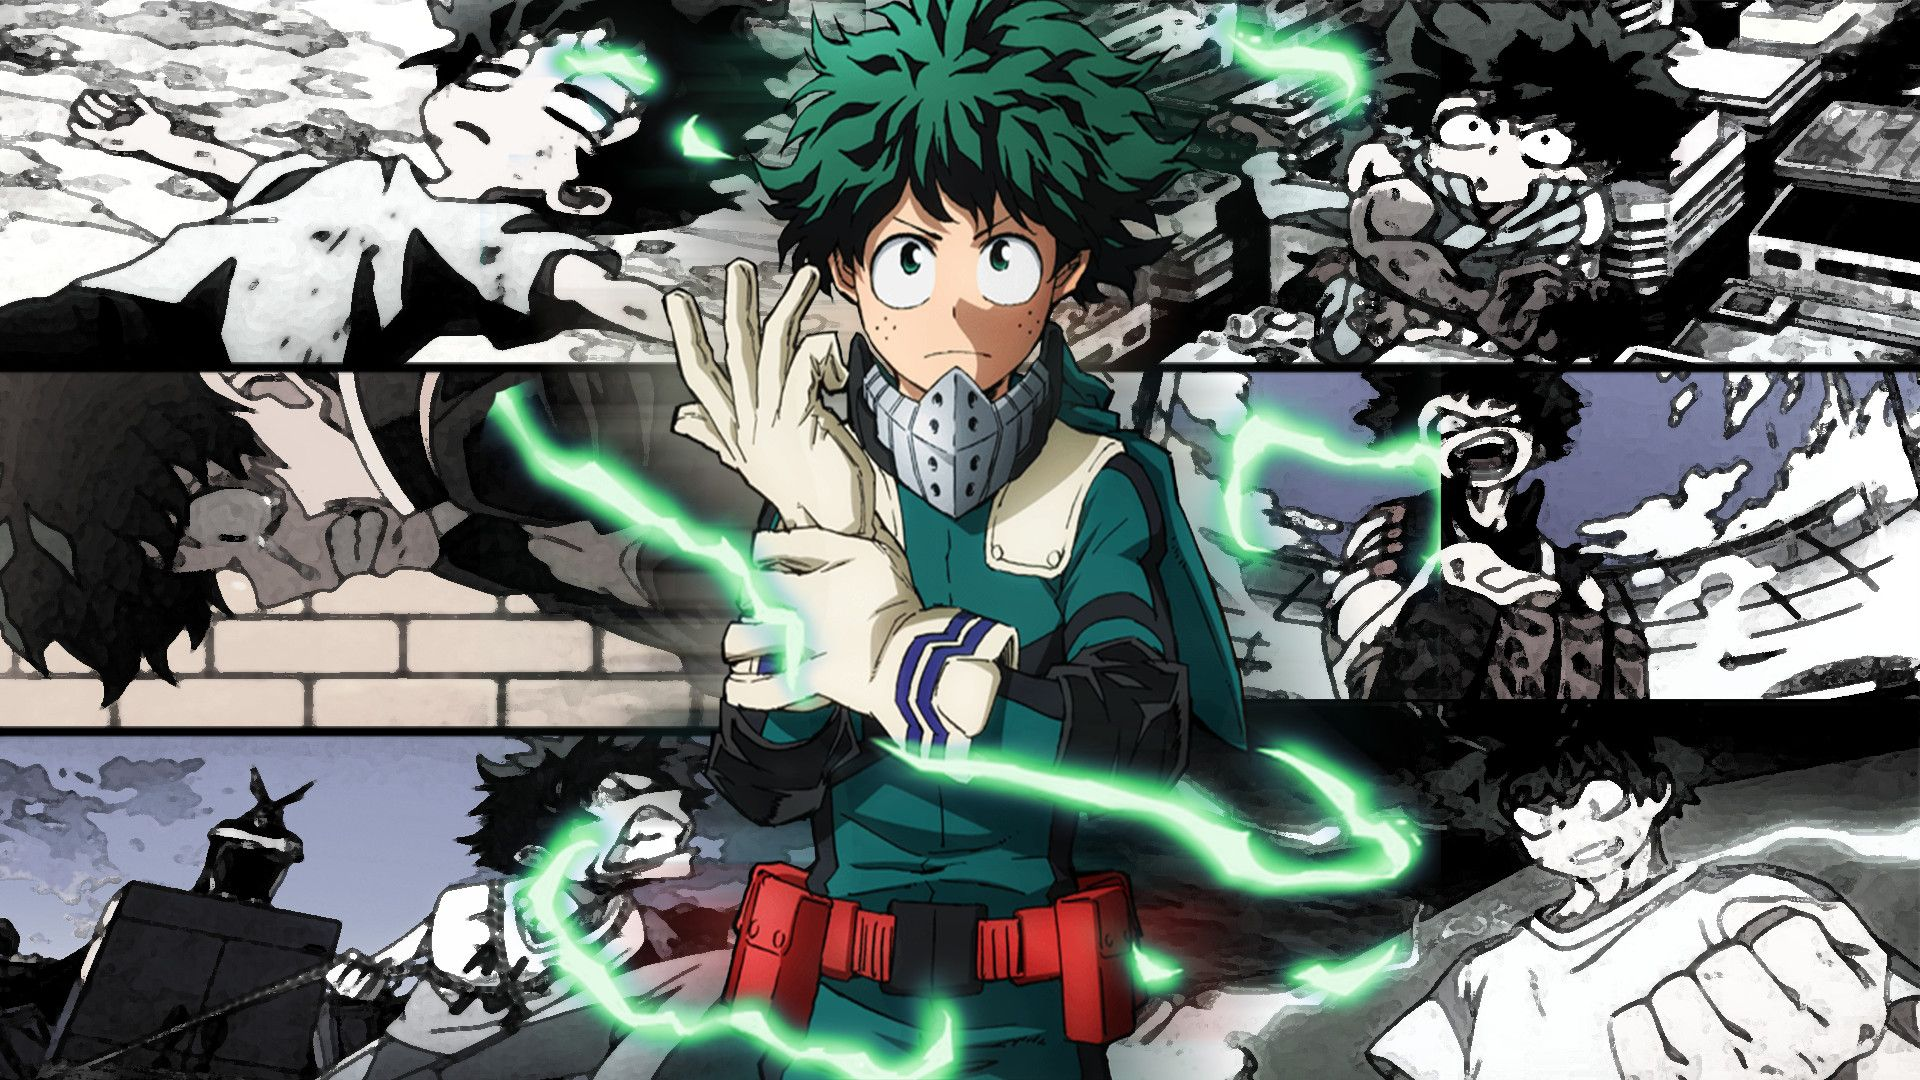 Aesthetic My Hero Academia Wallpapers Posted By Sarah Johnson Tons of awesome anime desktop mha wallpapers to download for free. aesthetic my hero academia wallpapers